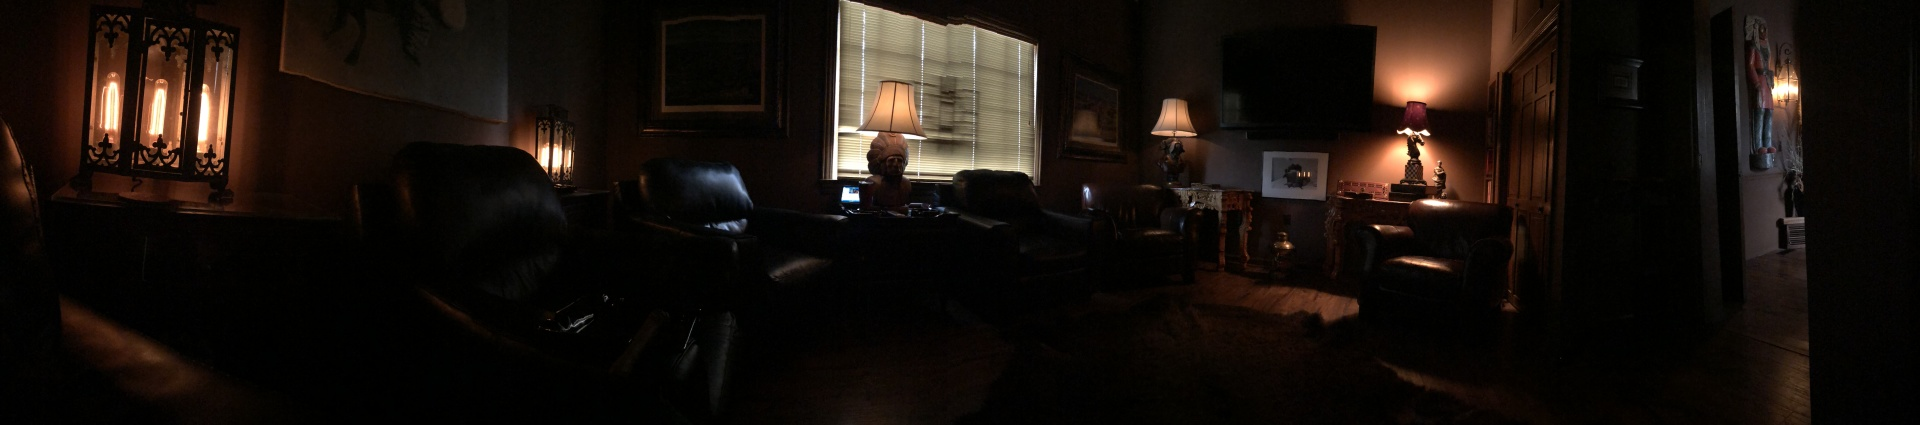 Panoramic from inside the lounge interior